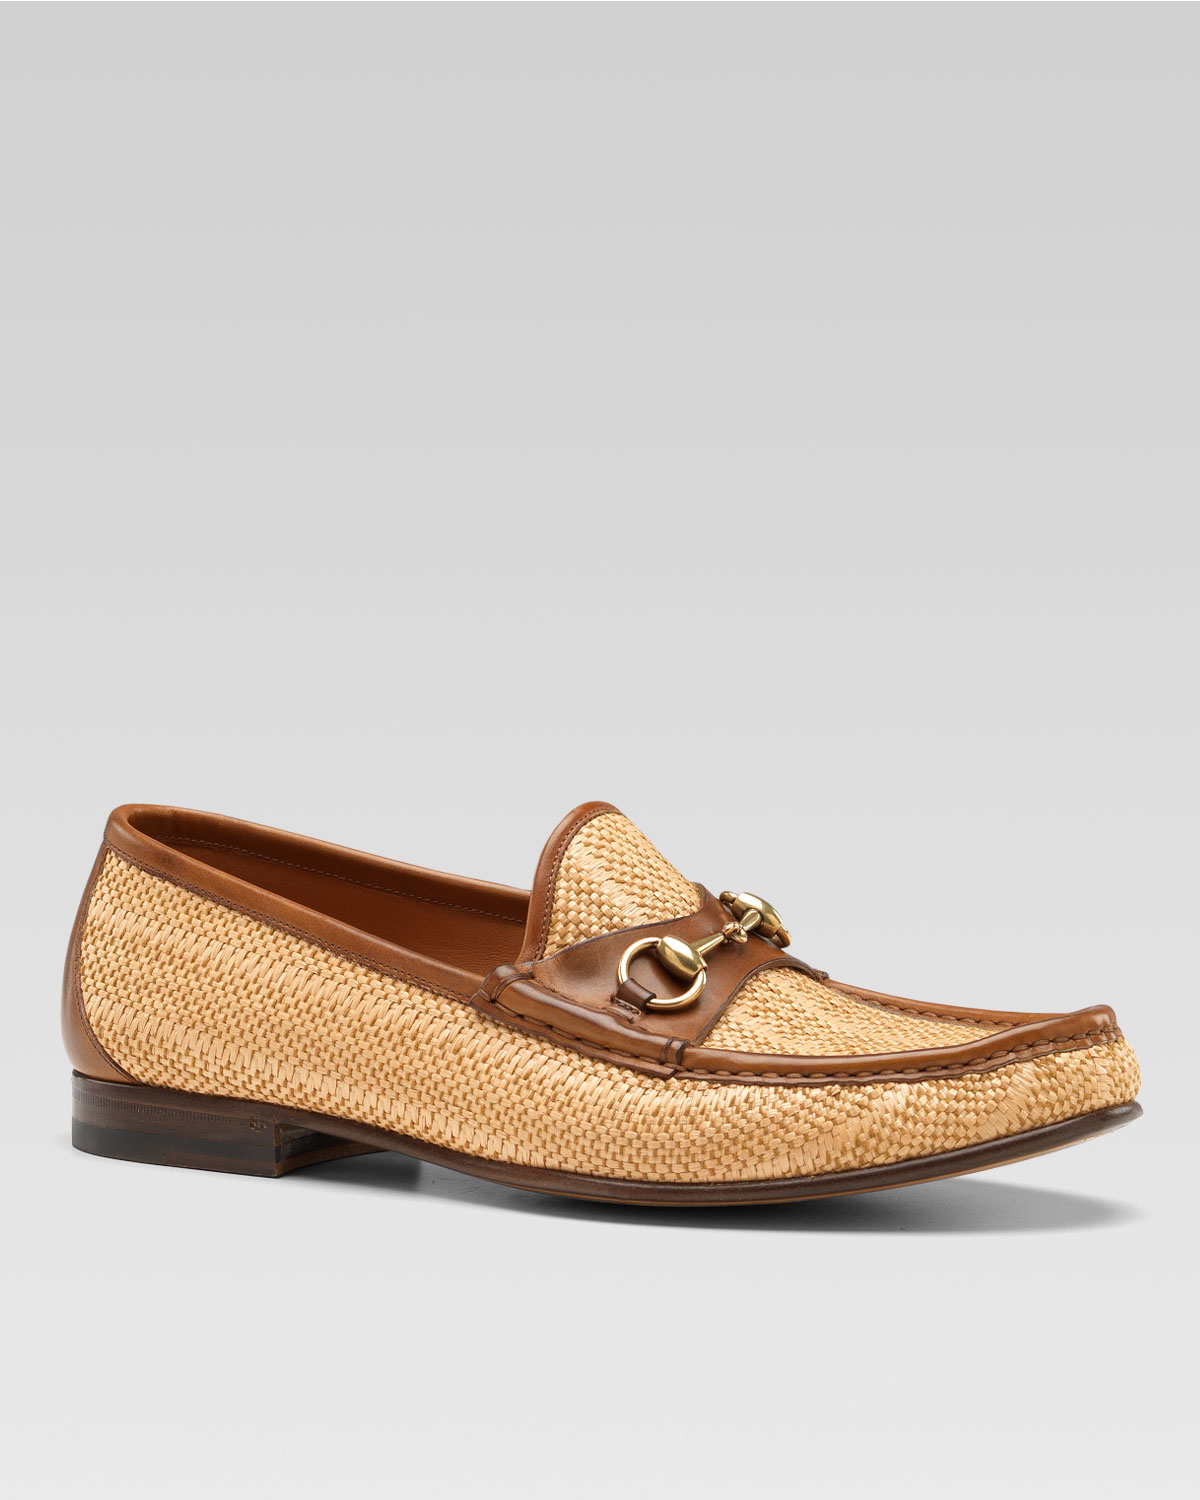 3ad9c17bb89 Lyst - Gucci Hannover Straw Bit Loafer in Natural